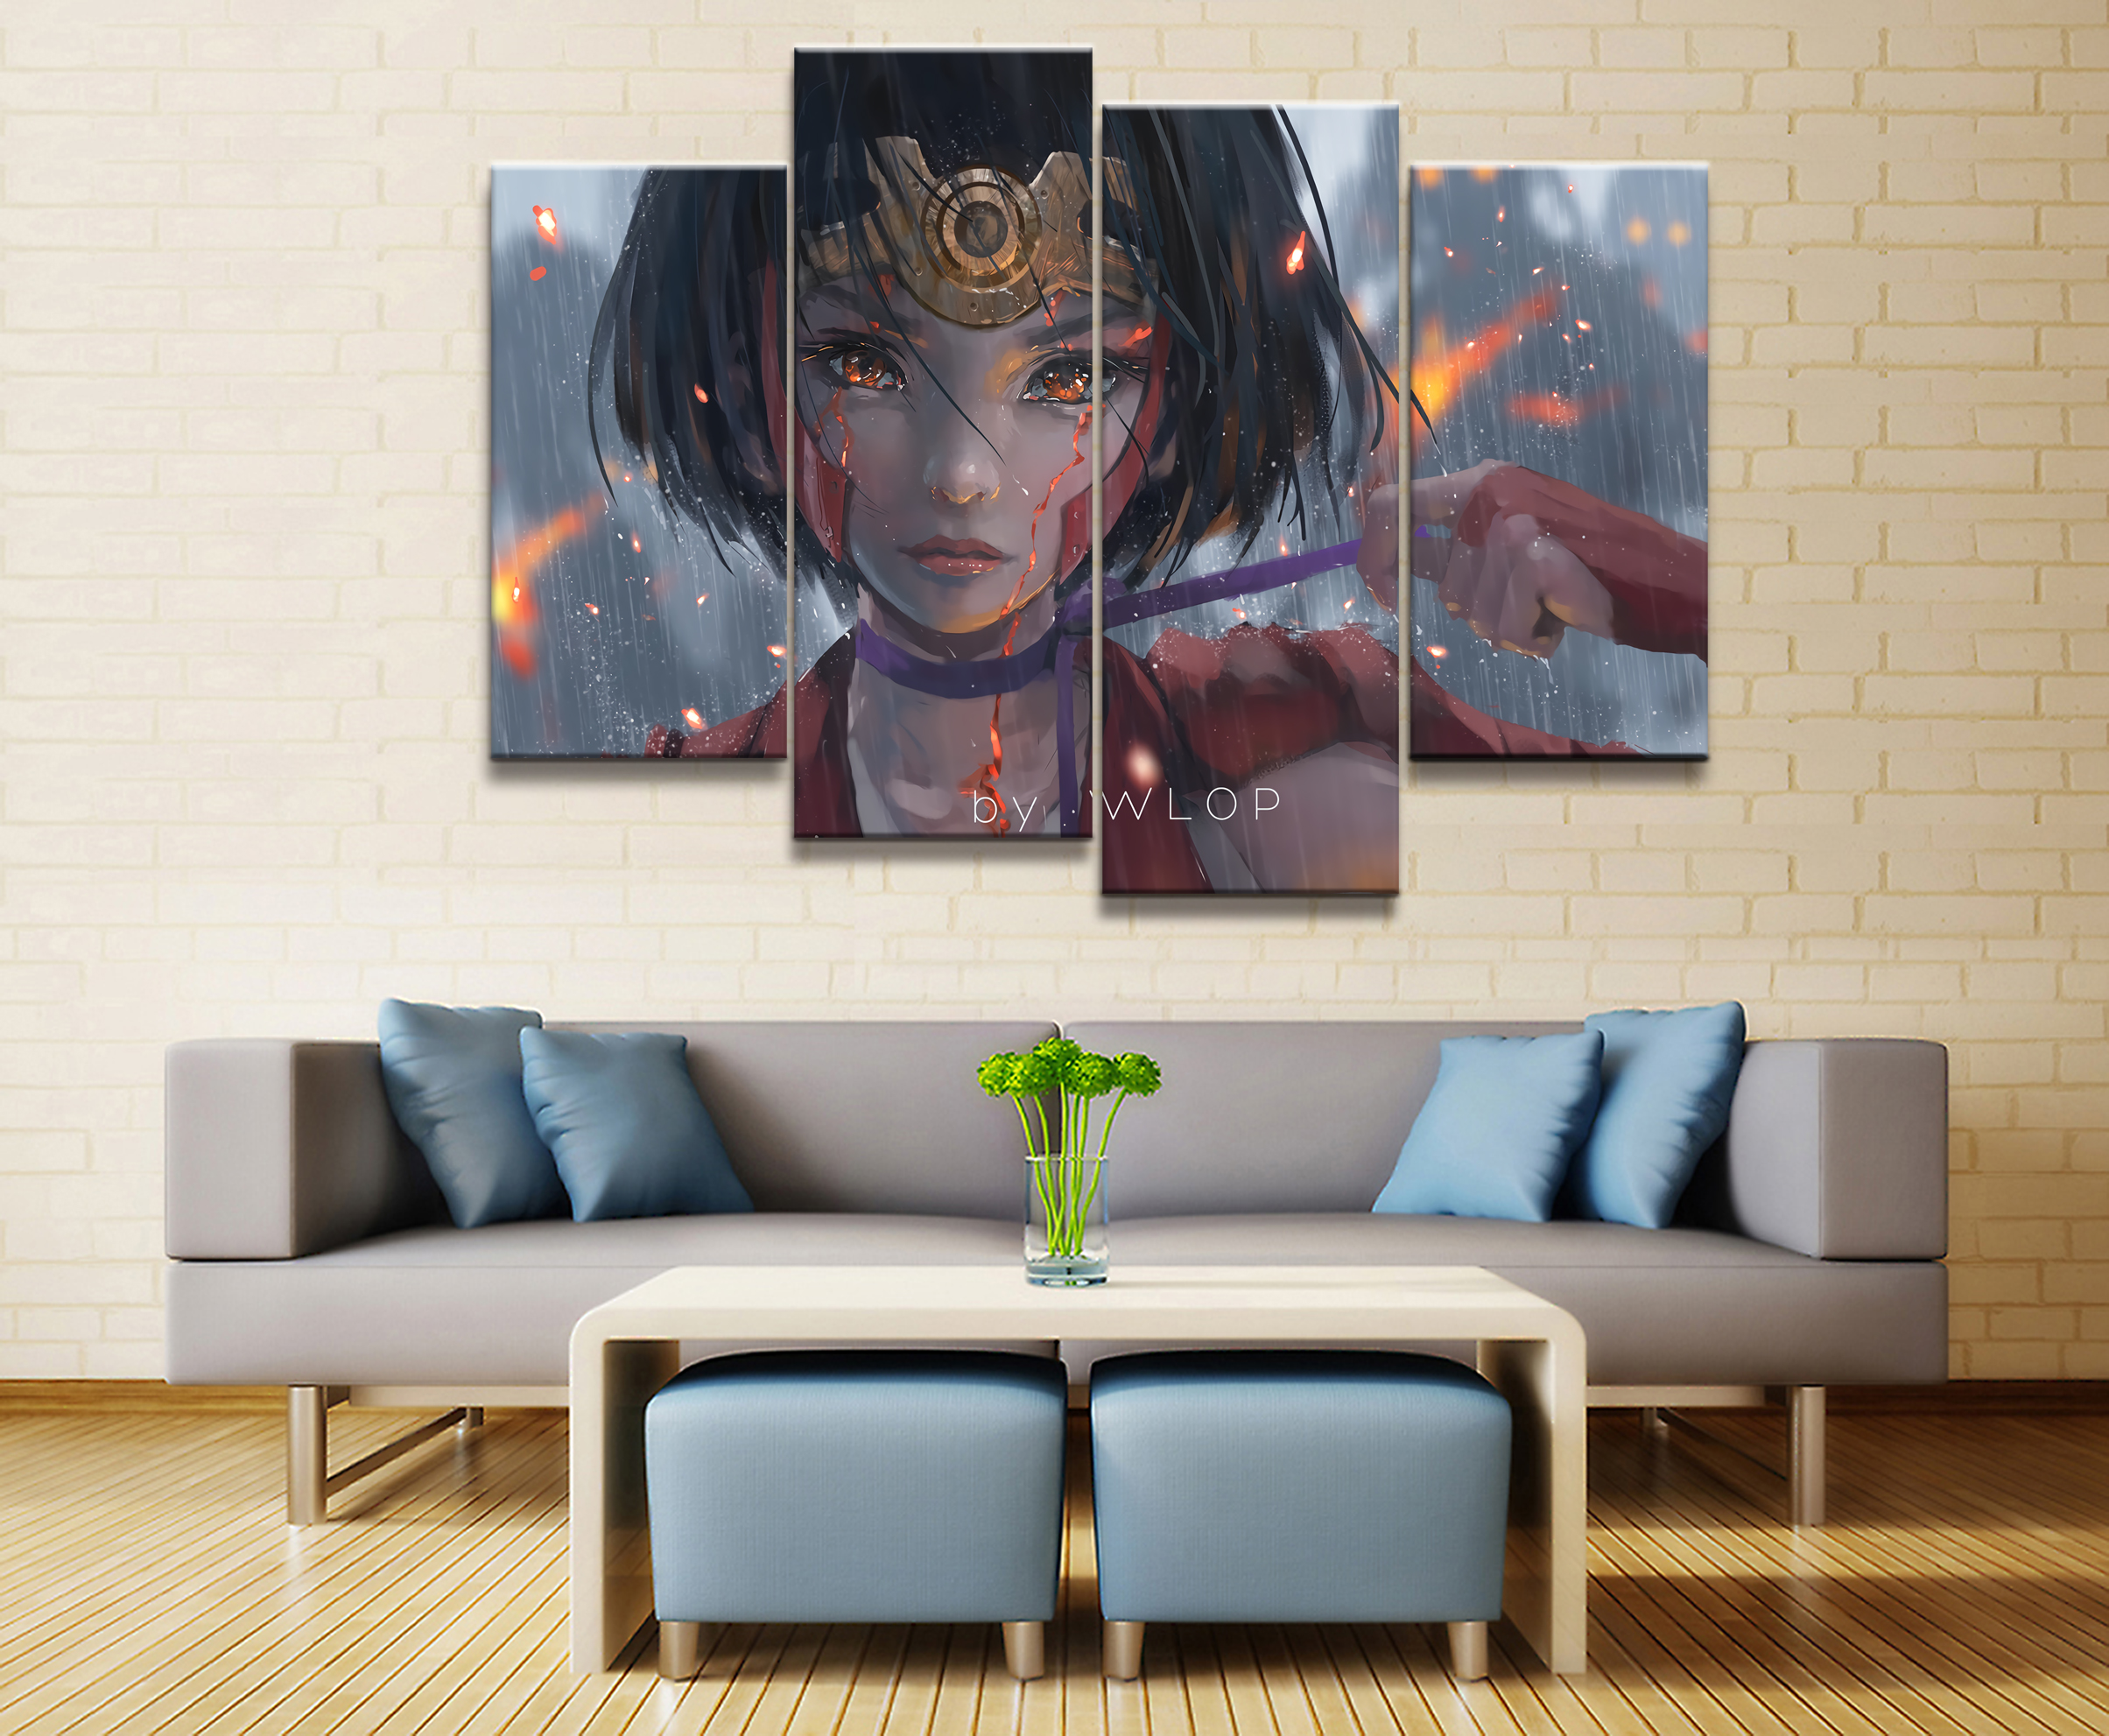 4 Panel WLOP My Hero Academia Animation Canvas Poster Printed Painting Living Room Wall Art Decor Picture Artworks Poster